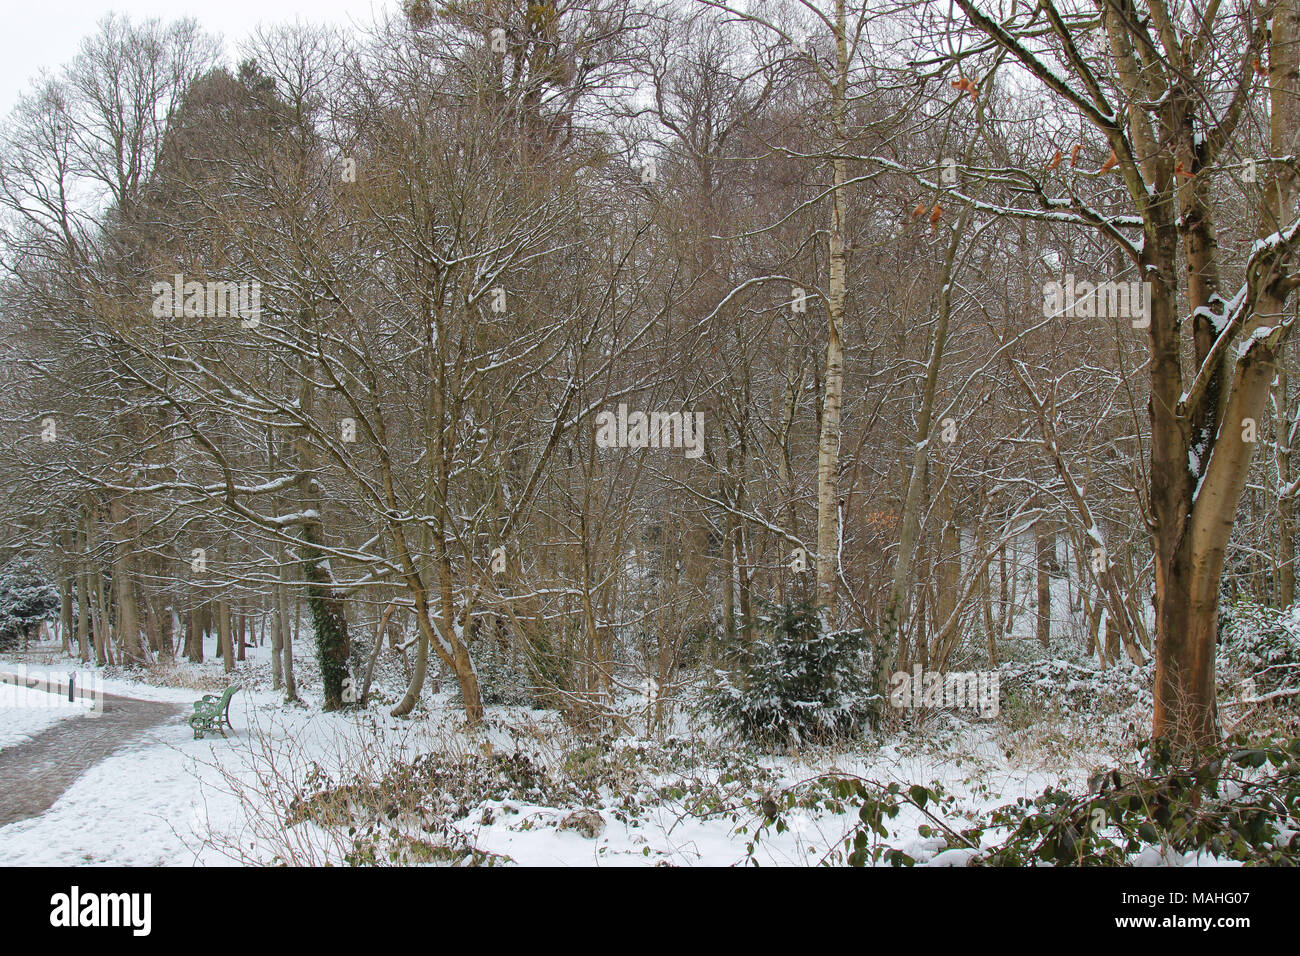 Landscape of snowy scen, South Hill Park, Bracknell, Berkshire, UK - Stock Image